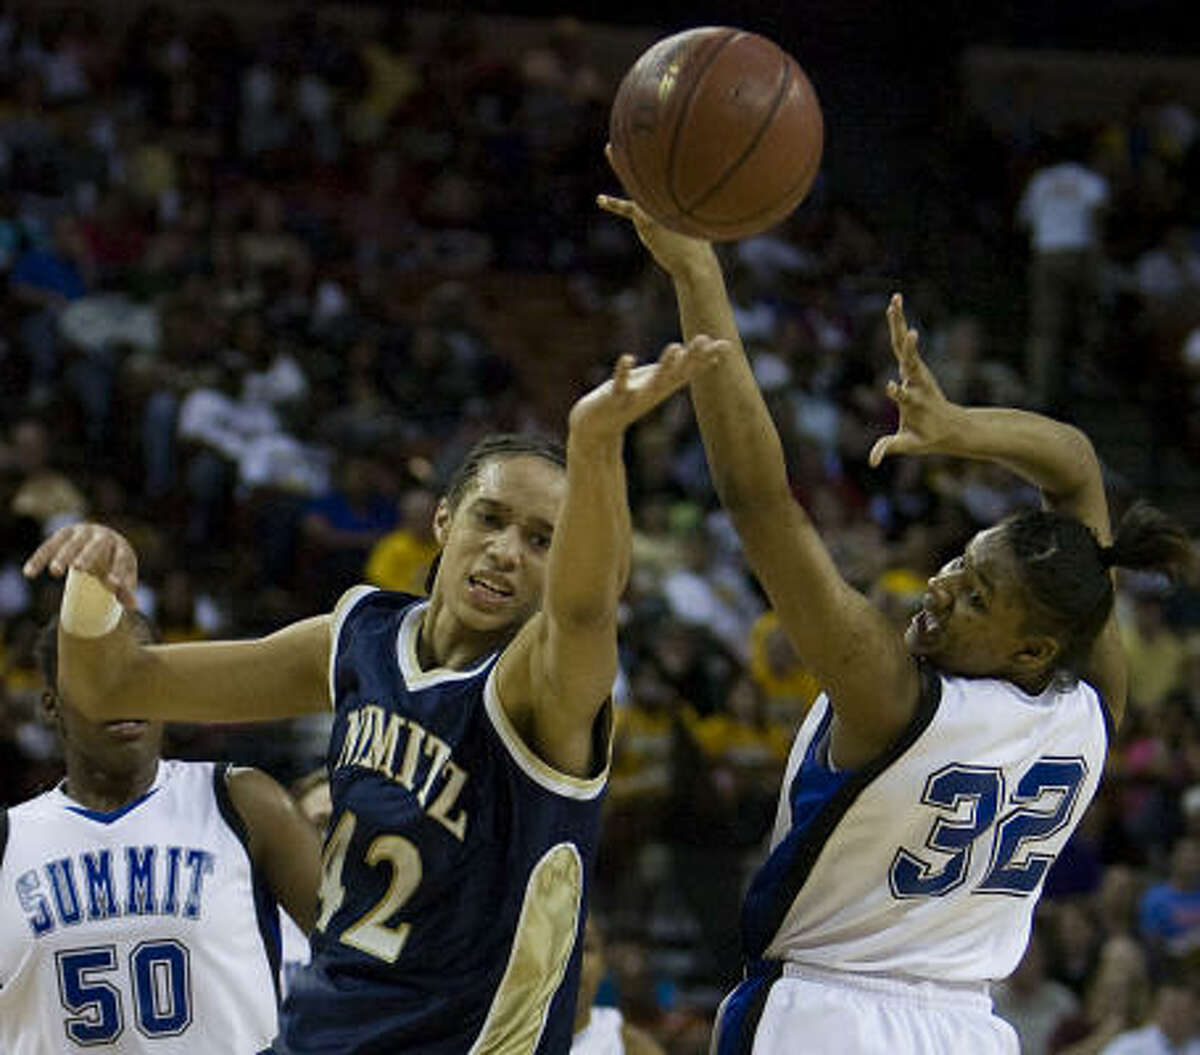 Mansfield Summit 52, Nimitz 43: Nimitz's Brittney Griner (42) battles Mansfield Summit's Breanna Harris for a loose ball in the first half of the state title game in Austin.